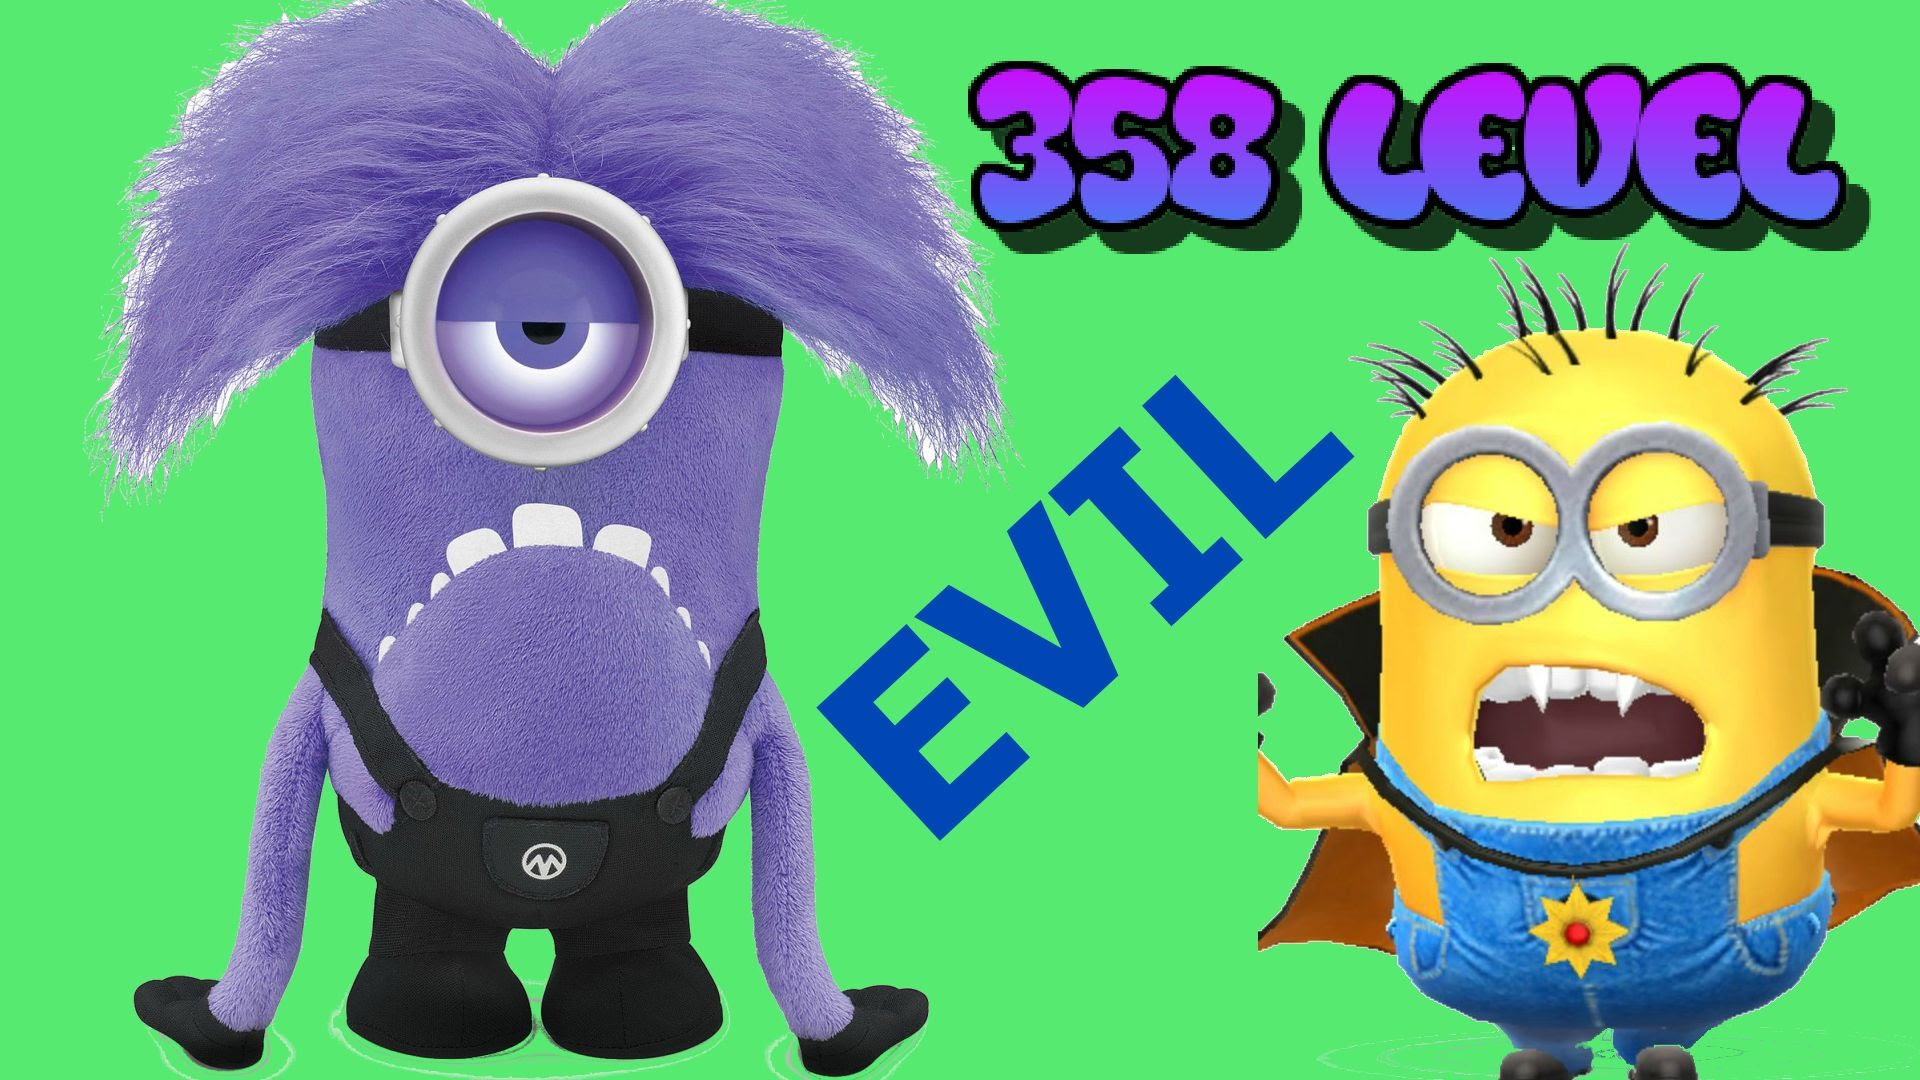 Vampire clipart villian. Despicable me minion rush